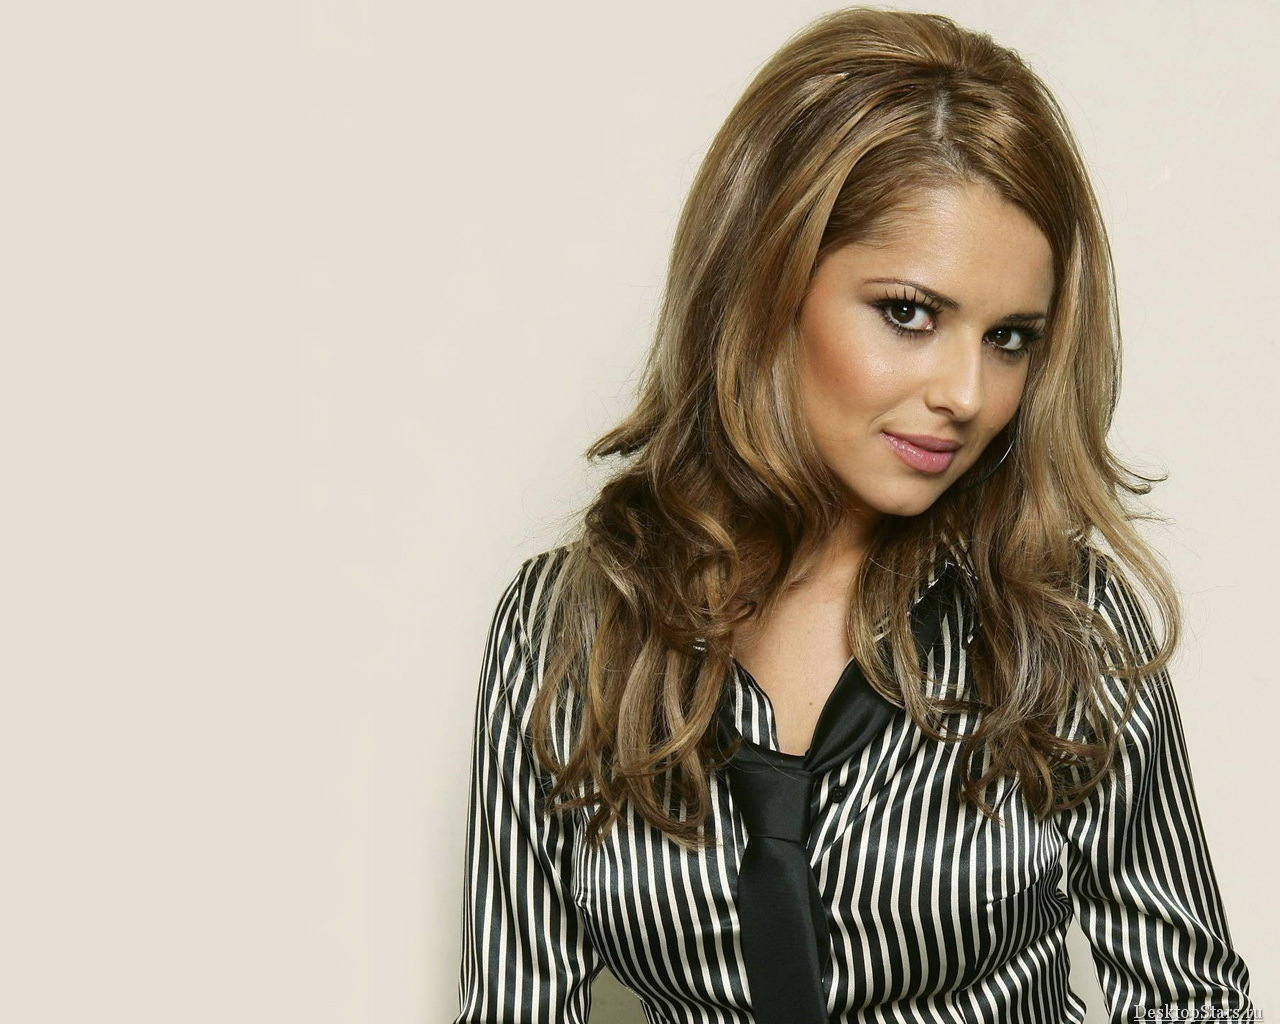 Cheryl Cole - Images Gallery